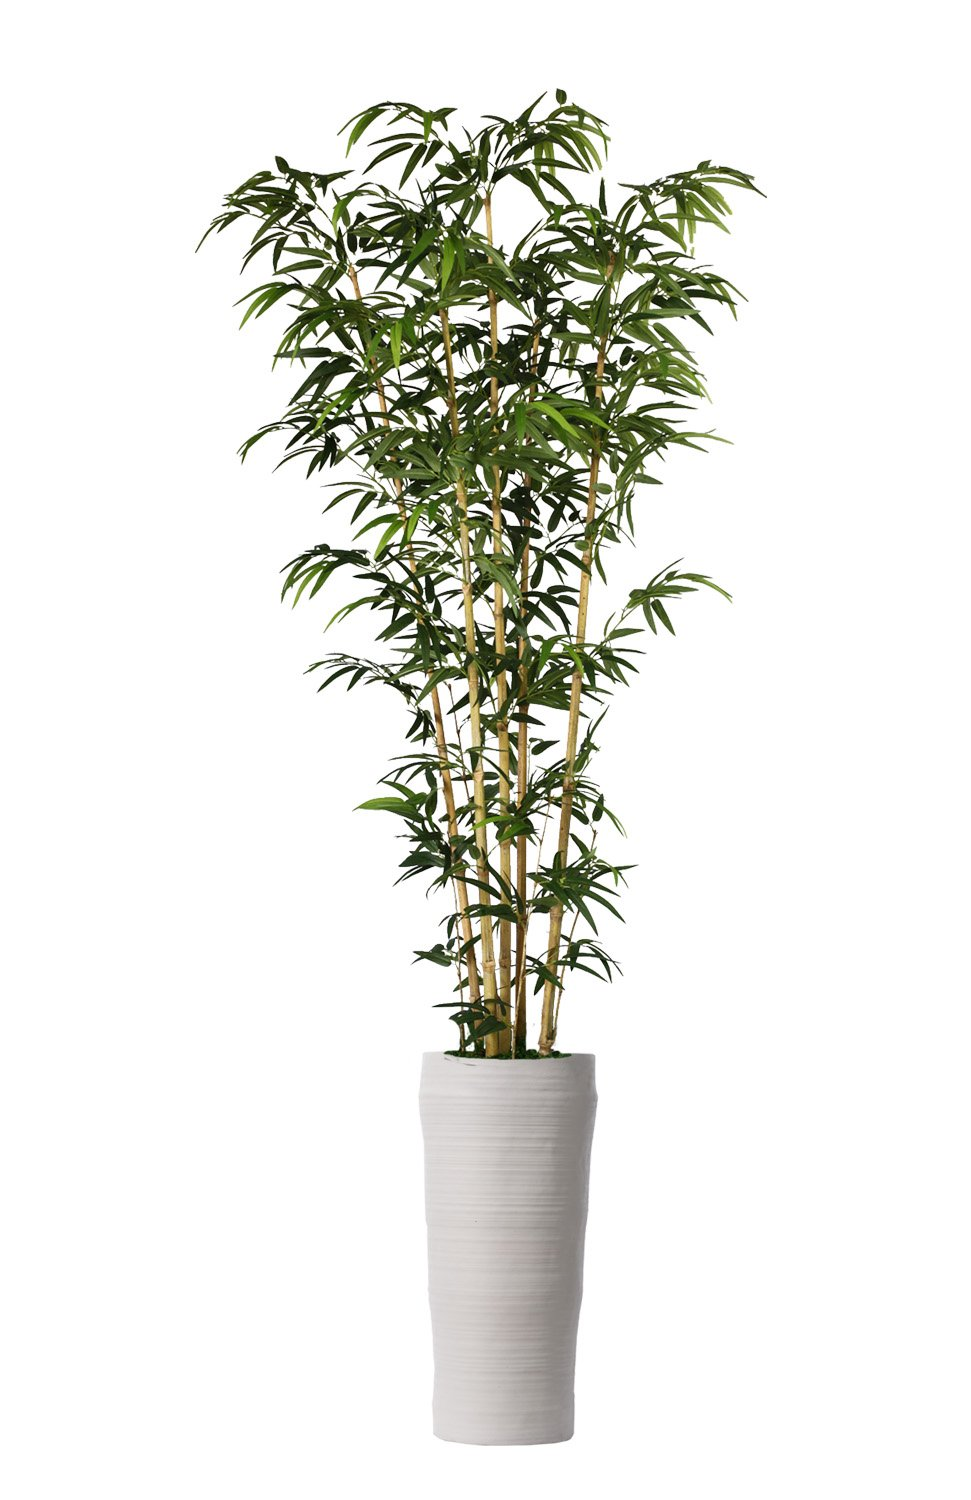 Laura Ashley VHX116218 93'' Bamboo Tree in Natural Poles in Planter Tree